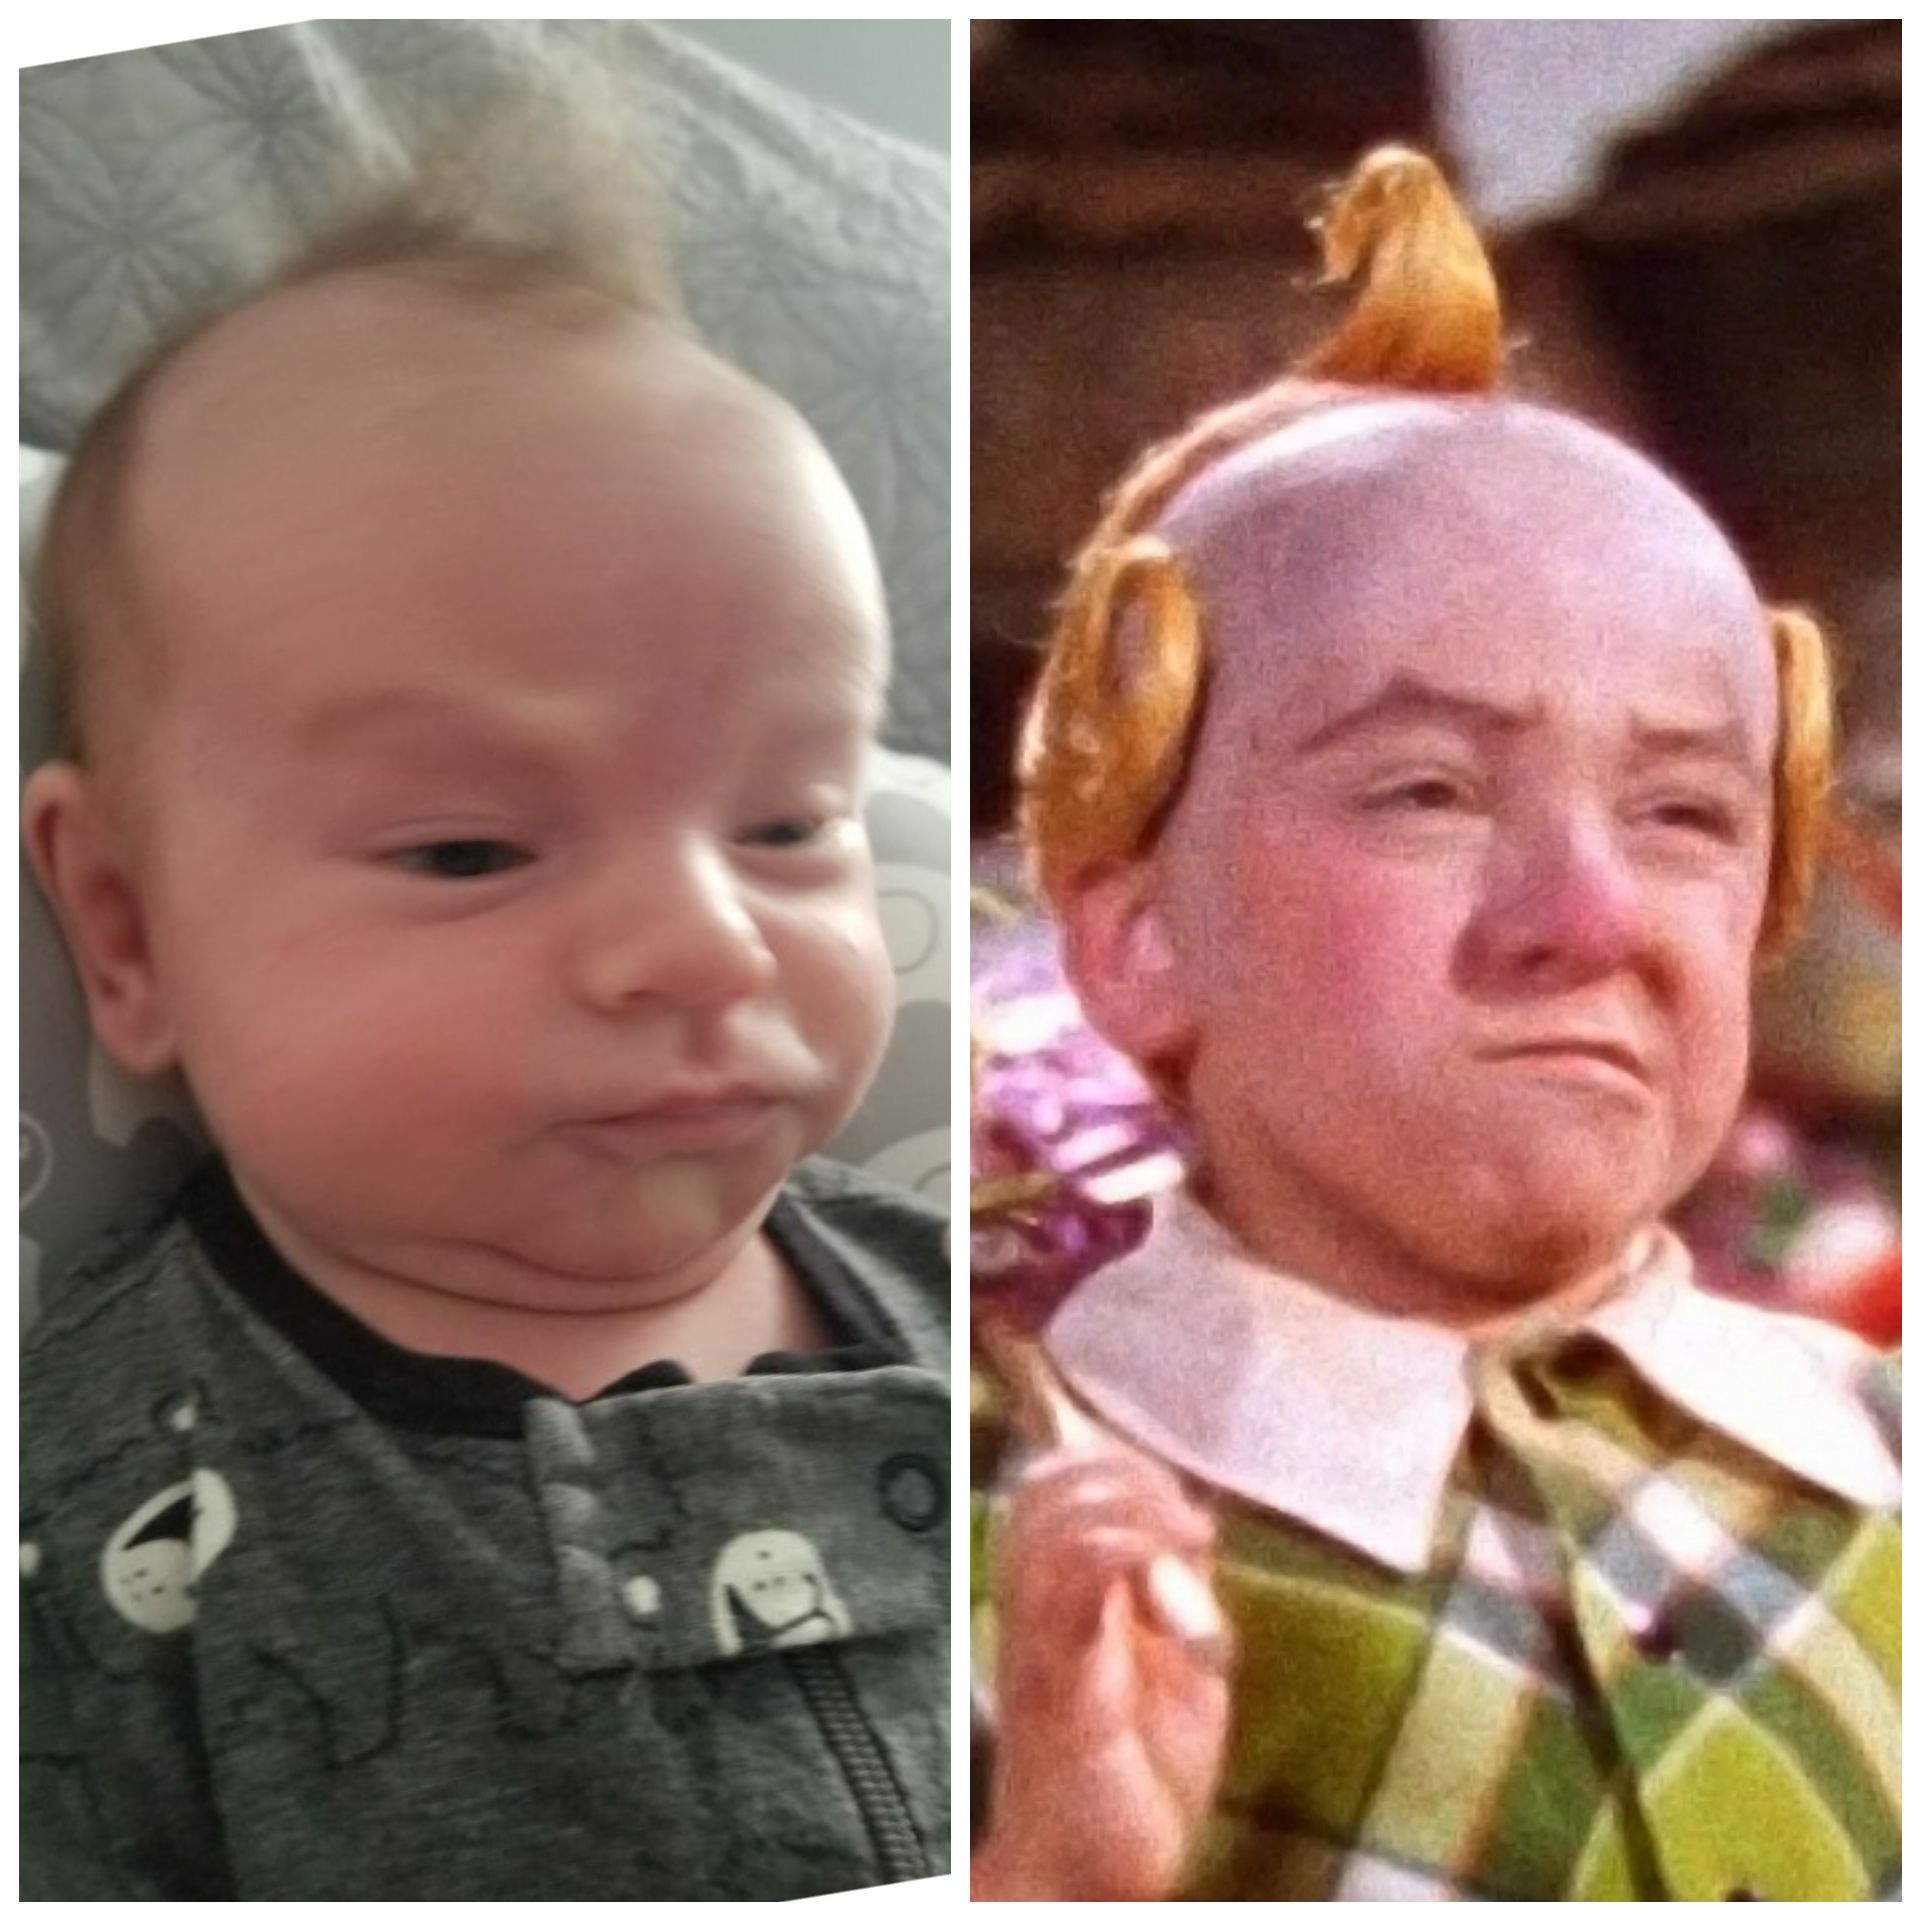 My nephew obviously has connections to the lollipop guild.